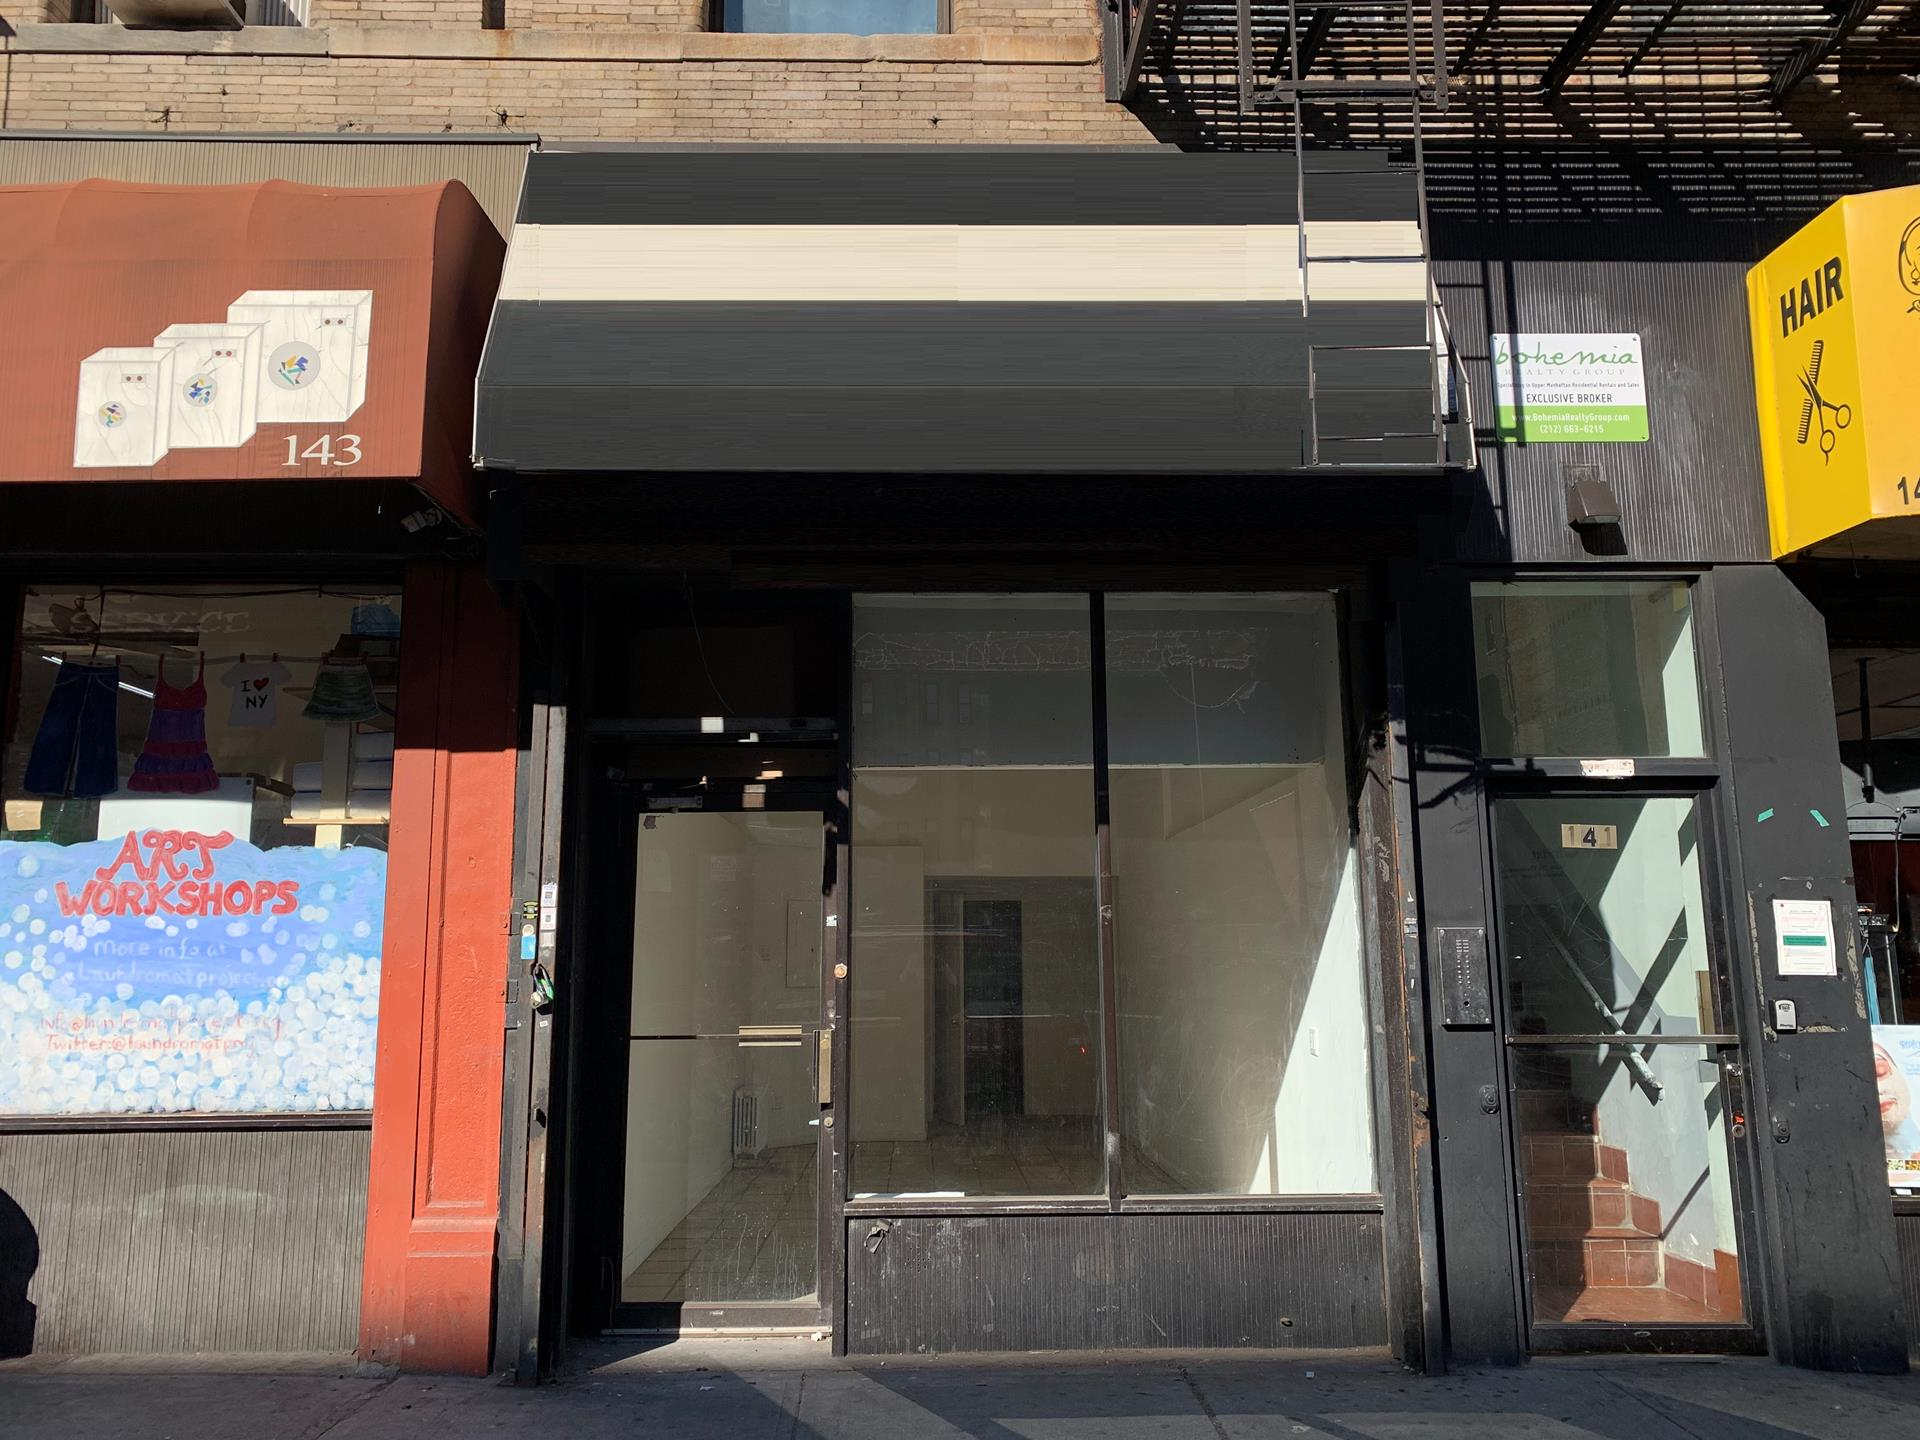 141 West 116th Street, RETAIL - Harlem, New York